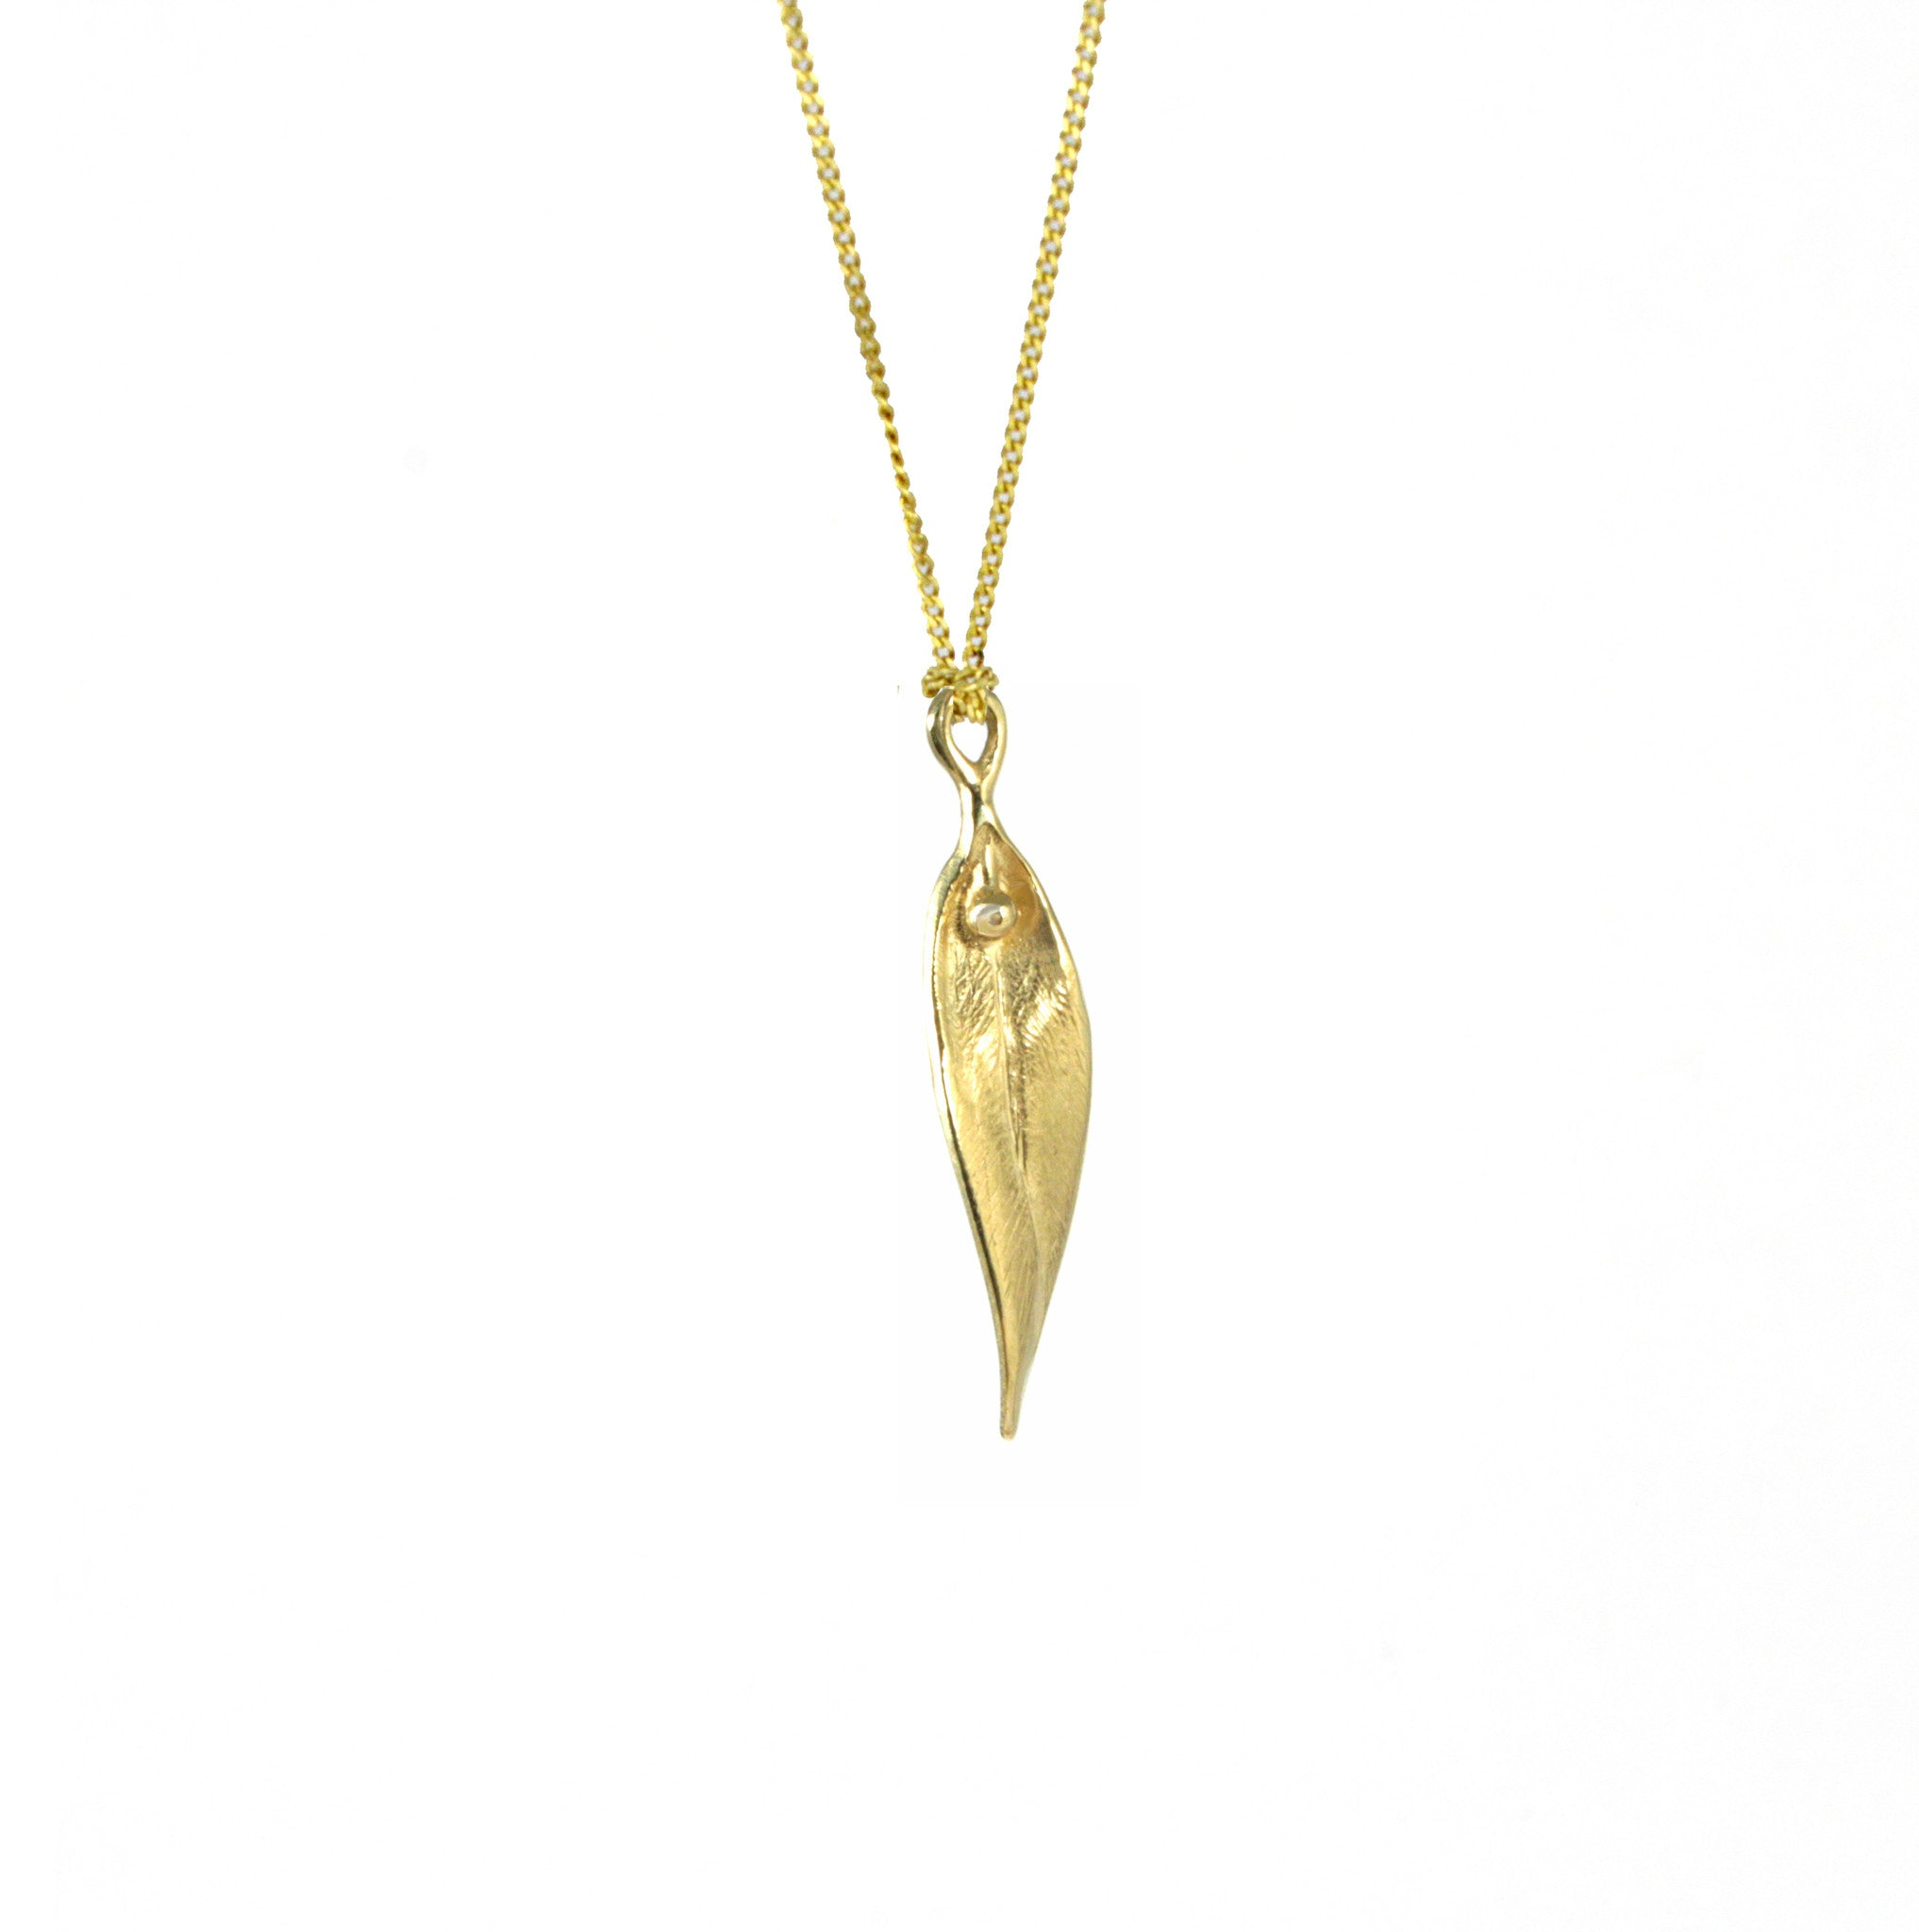 Drop Leaf Necklace - CRED Jewellery - Fairtrade Jewellery